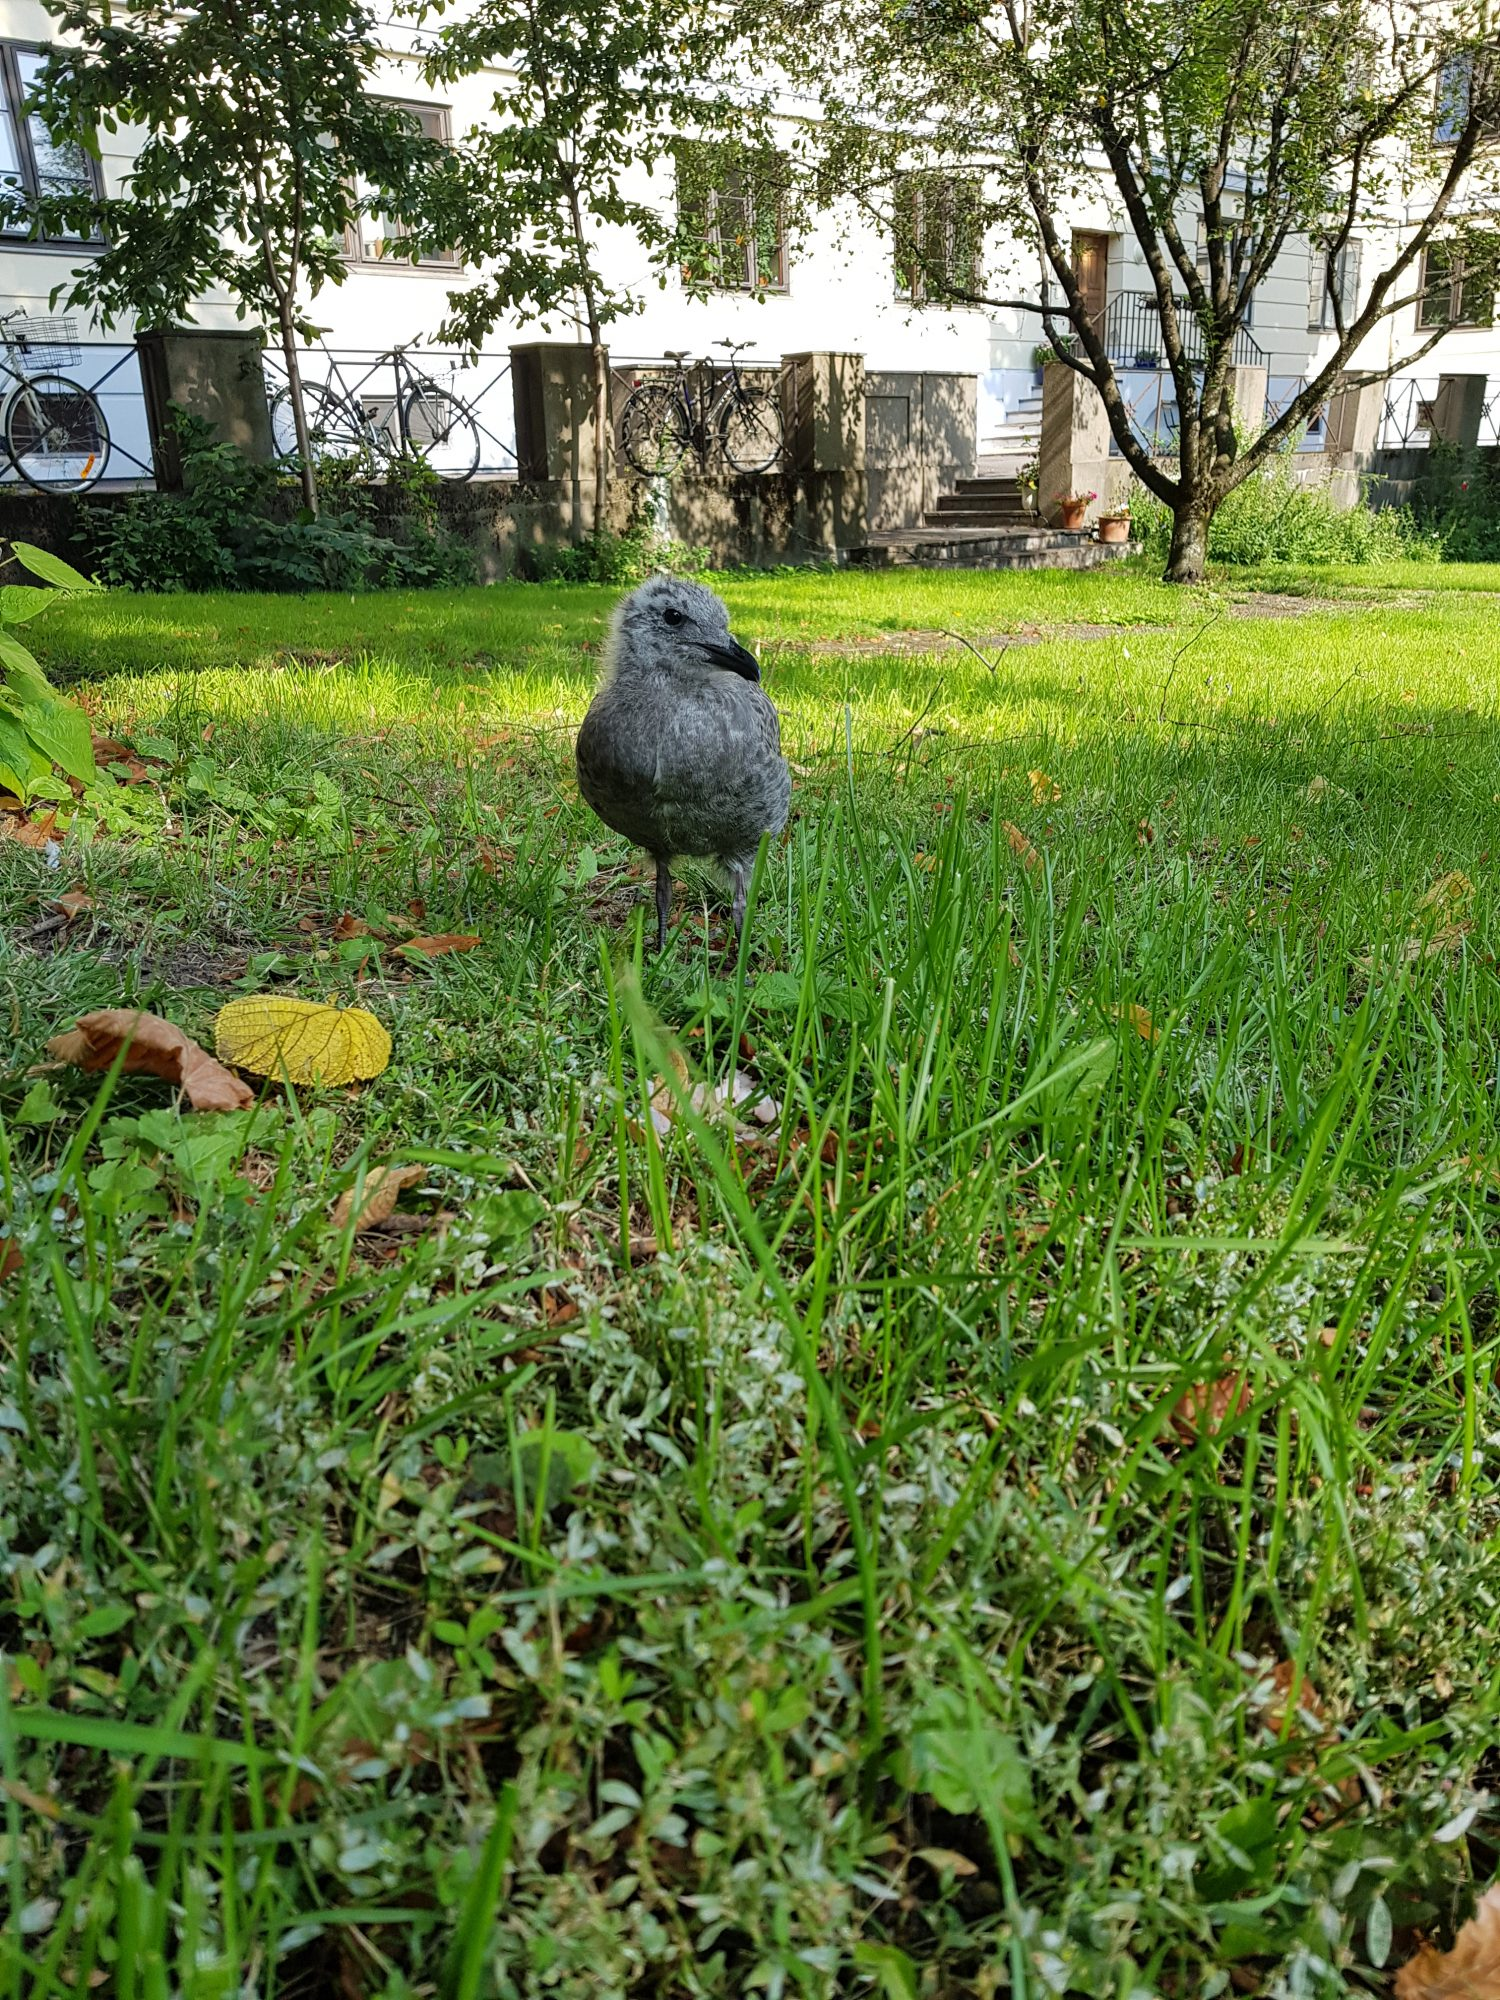 A baby seagull stood in the grass